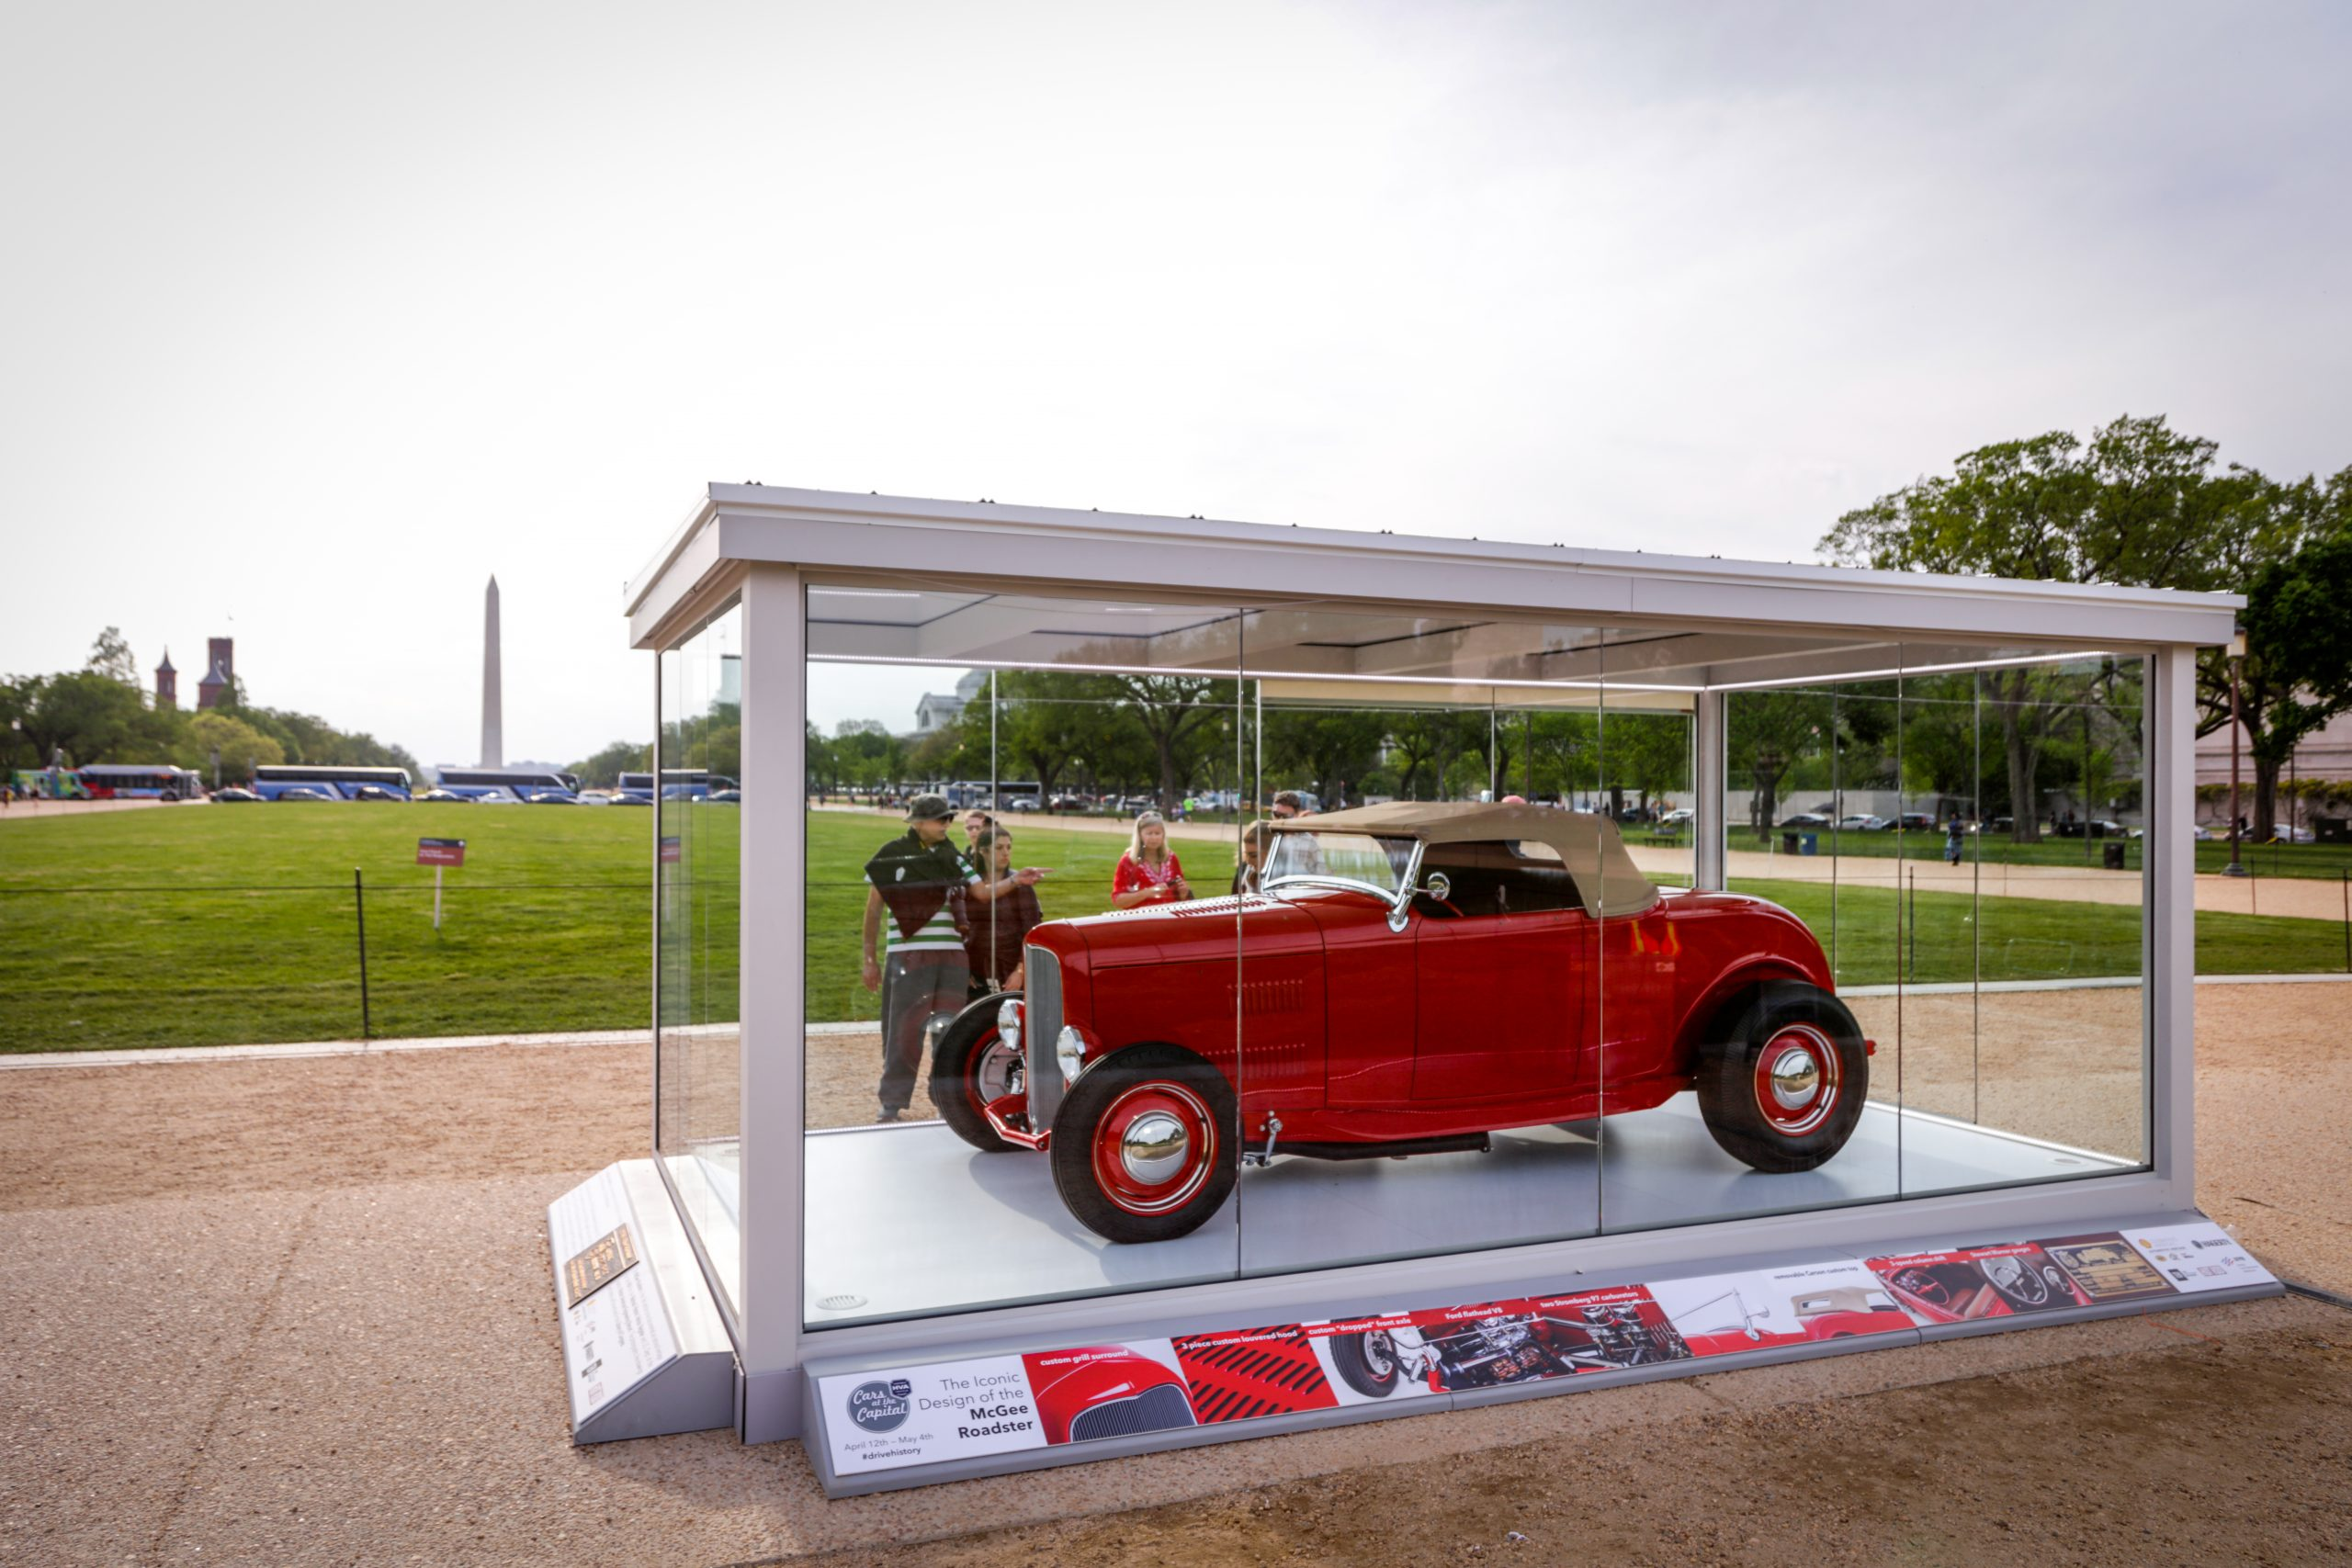 McGee Roadster - 1932 Ford - HVA Cars at the Capital 2